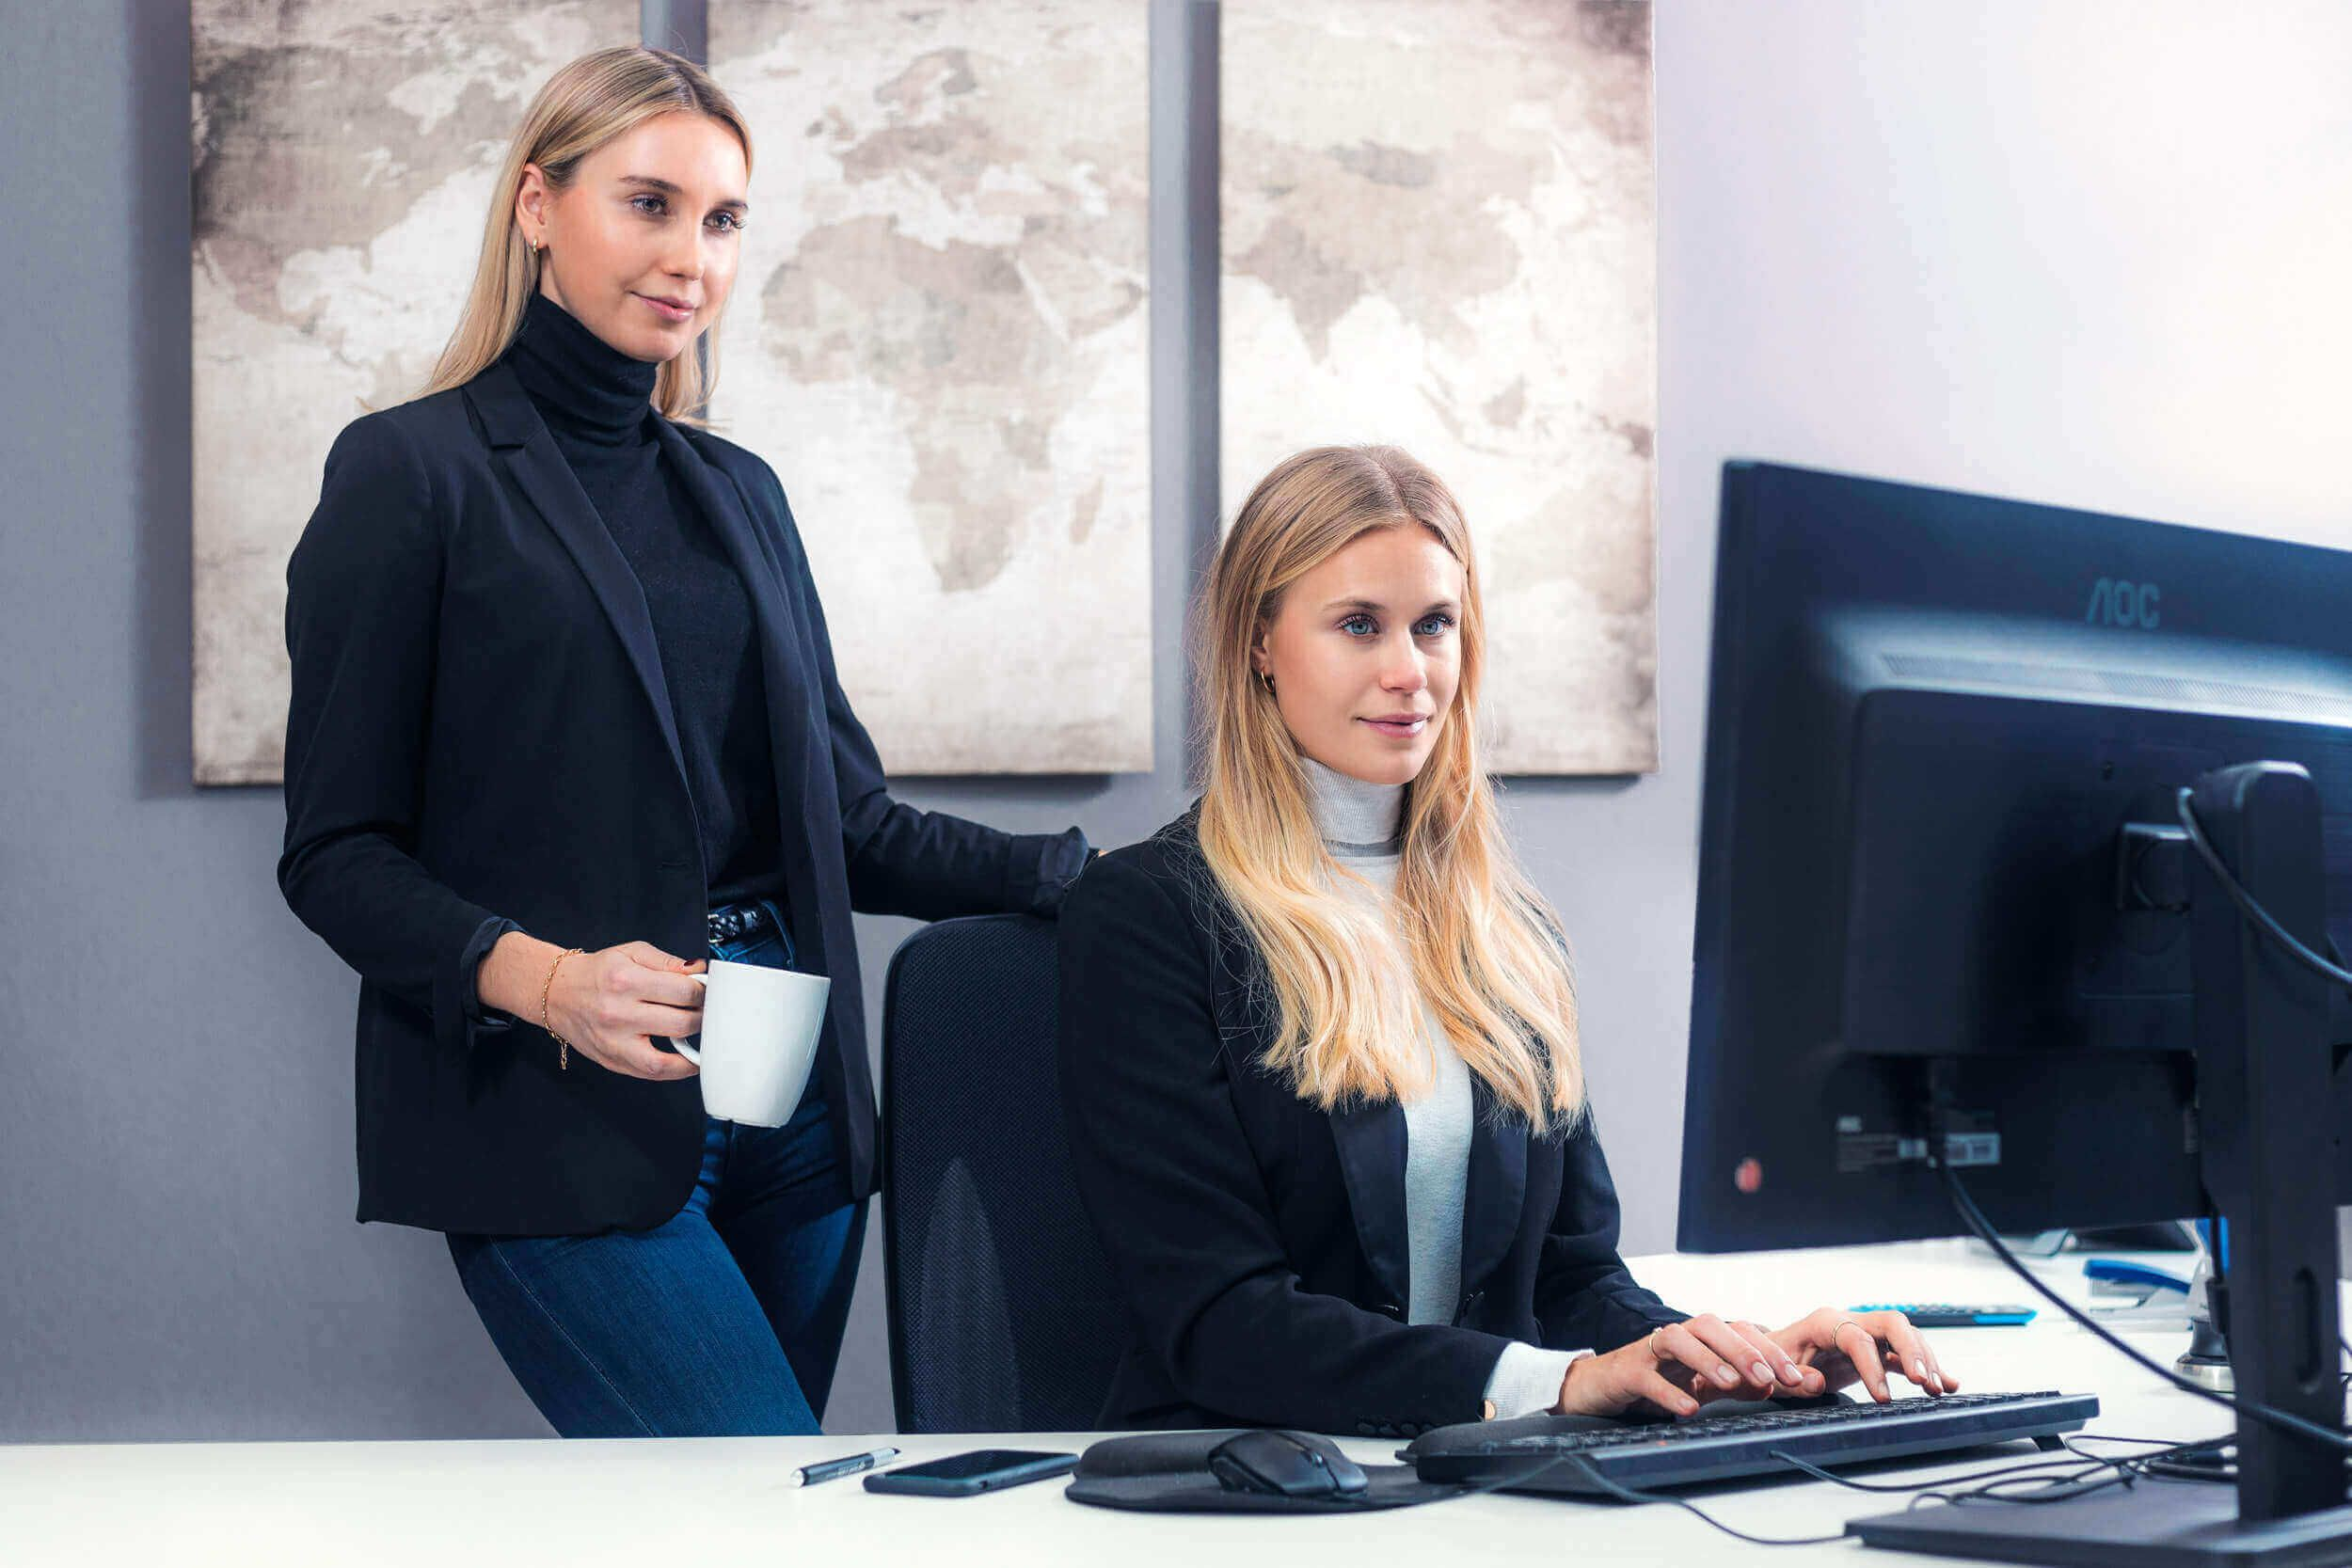 two women looking at monitor